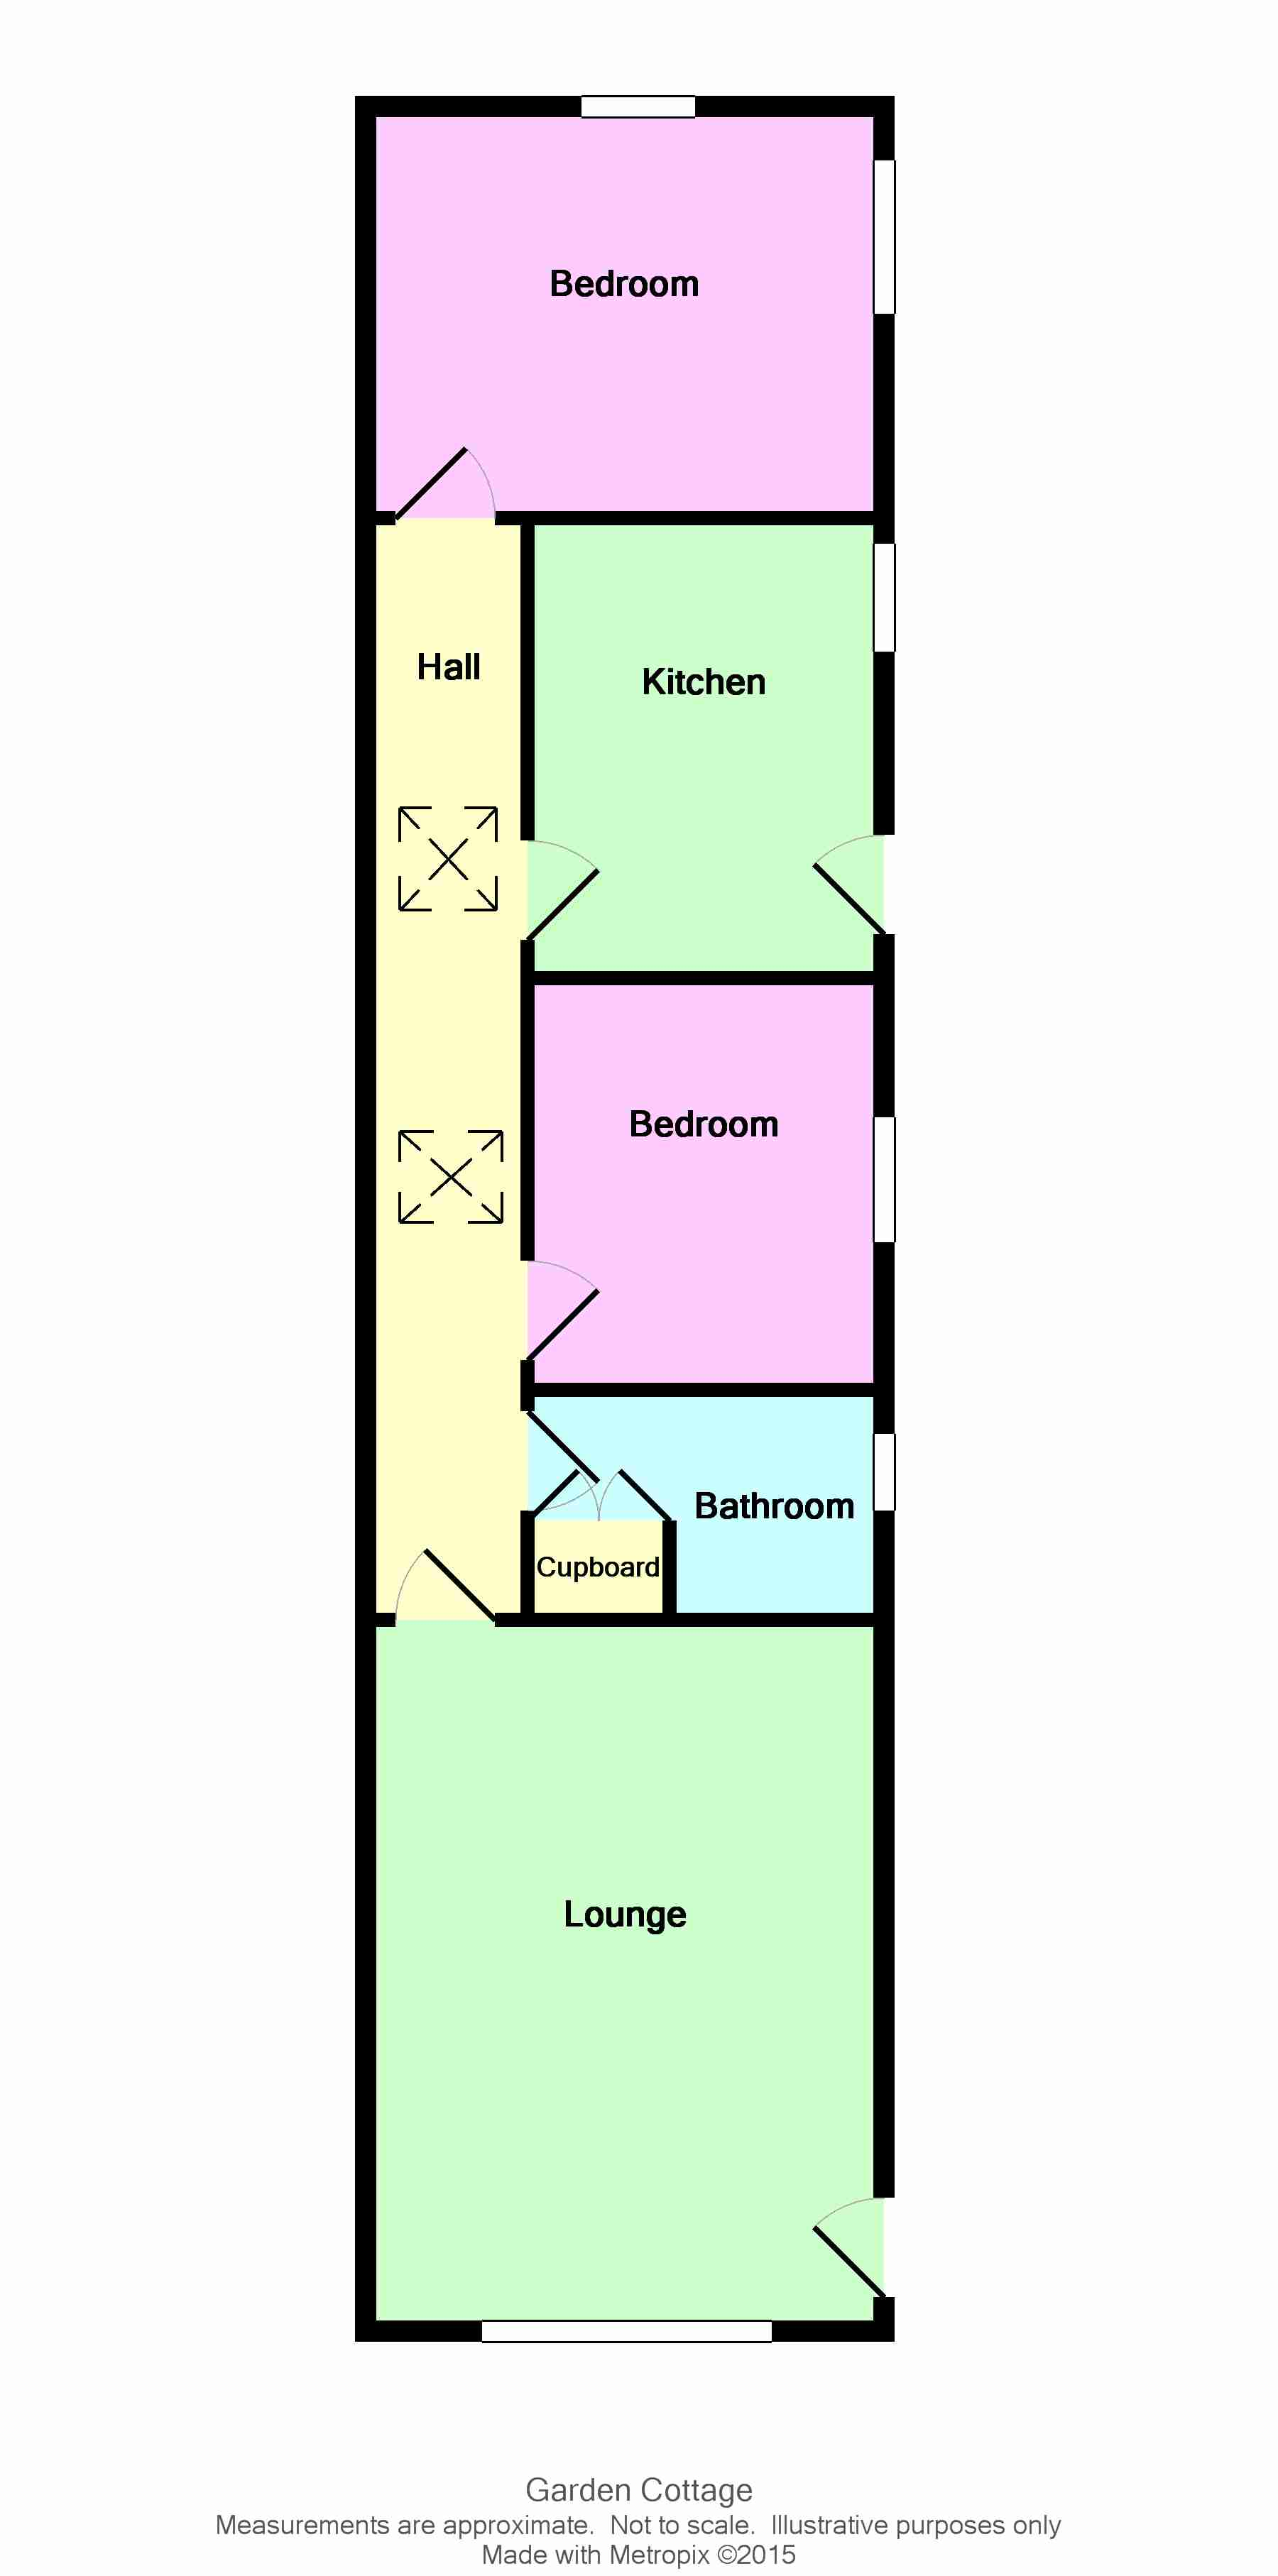 Photograph of Garden Cottage floorplan